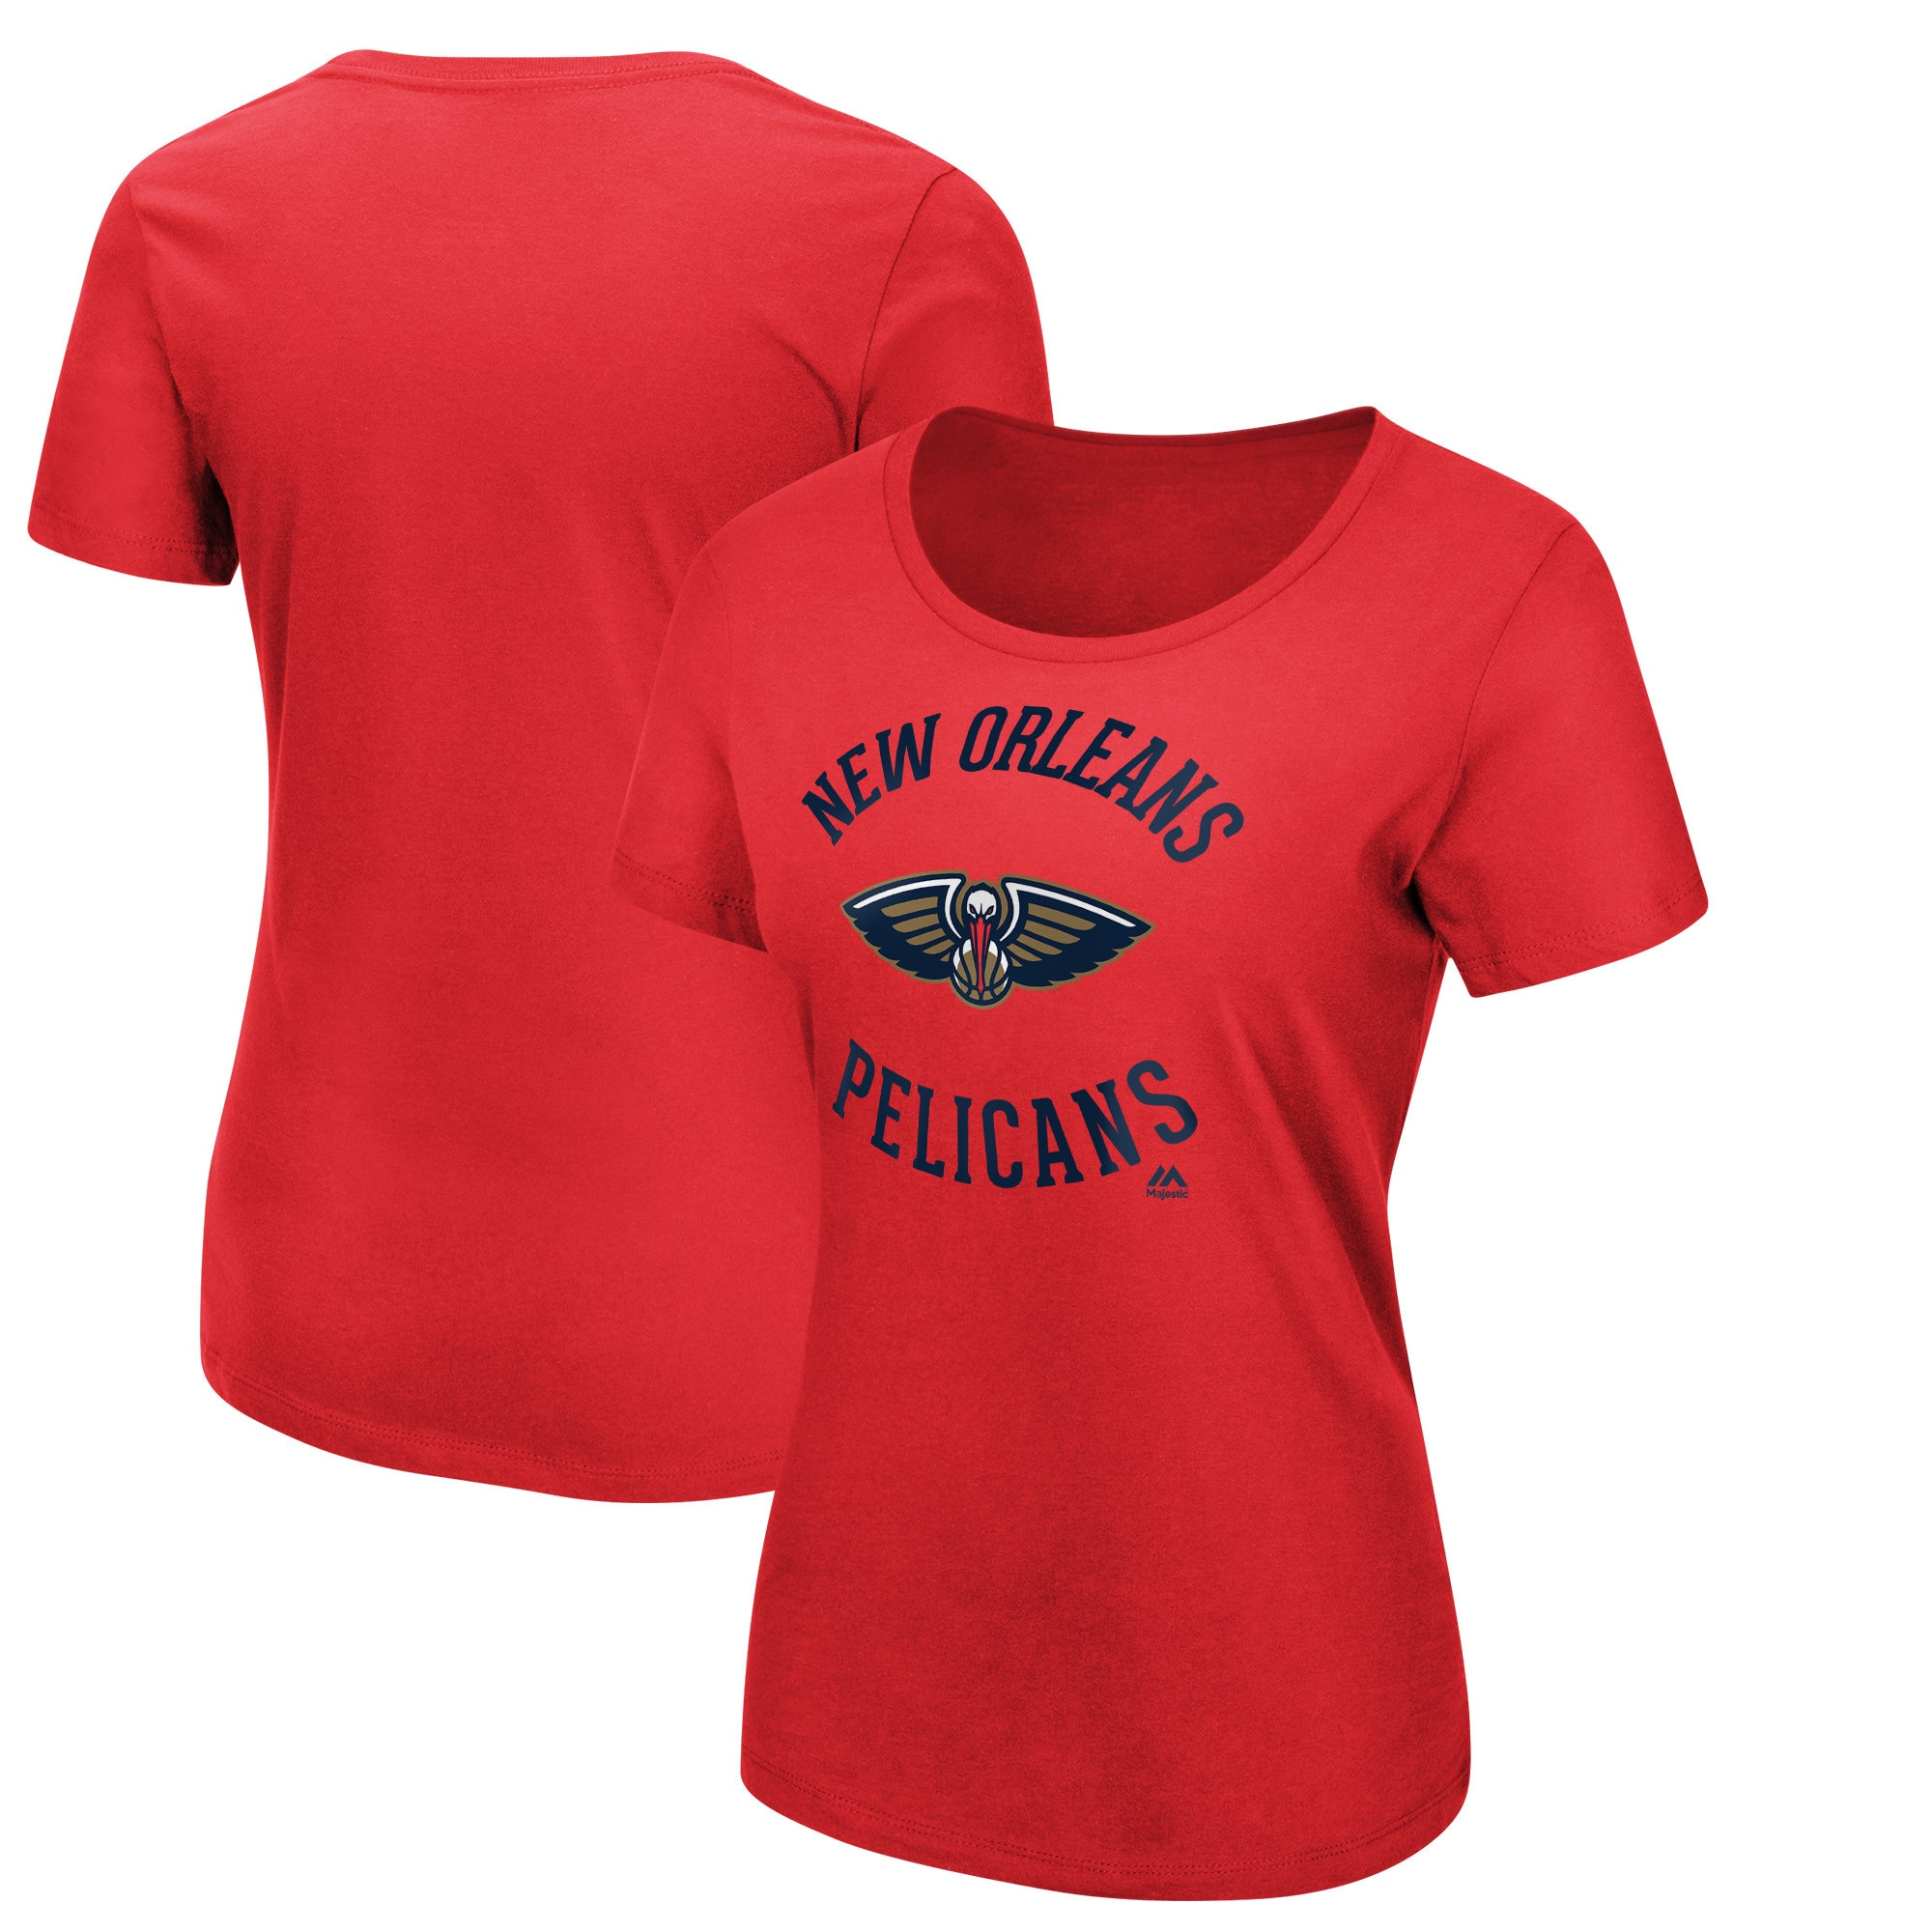 New Orleans Pelicans Majestic Women's The Main Thing T-Shirt - Red